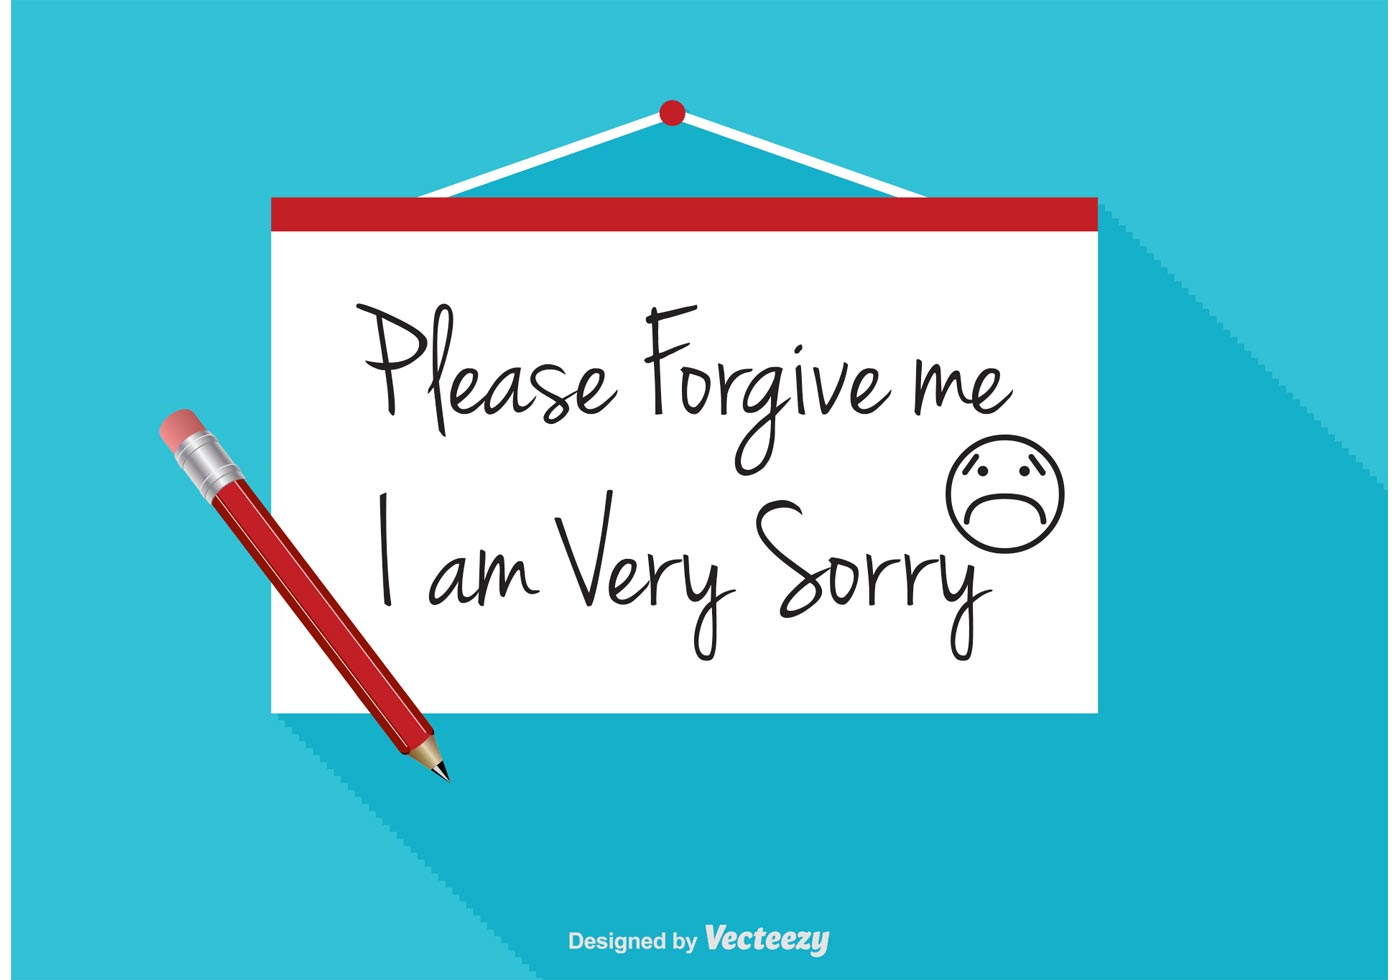 I Am Sorry Vector Illustration - Download Free Vector Art, Stock Graphics & Images